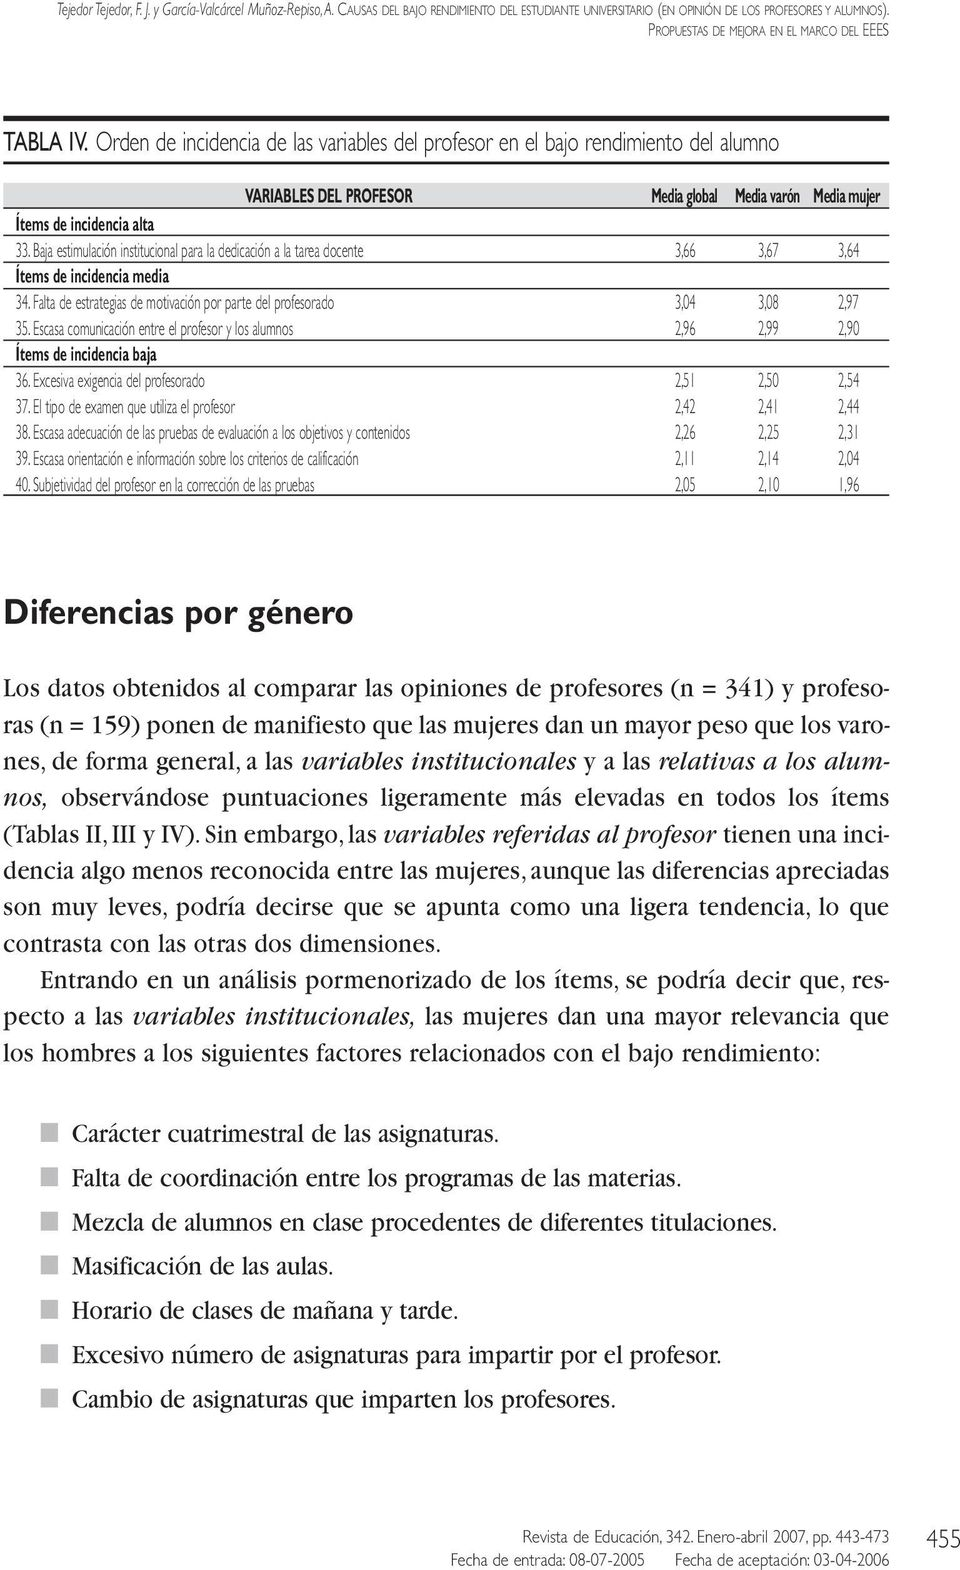 Orden de incidencia de las variables del profesor en el bajo rendimiento del alumno VARIABLES DEL PROFESOR Media global Media varón Media mujer Ítems de incidencia alta 33.